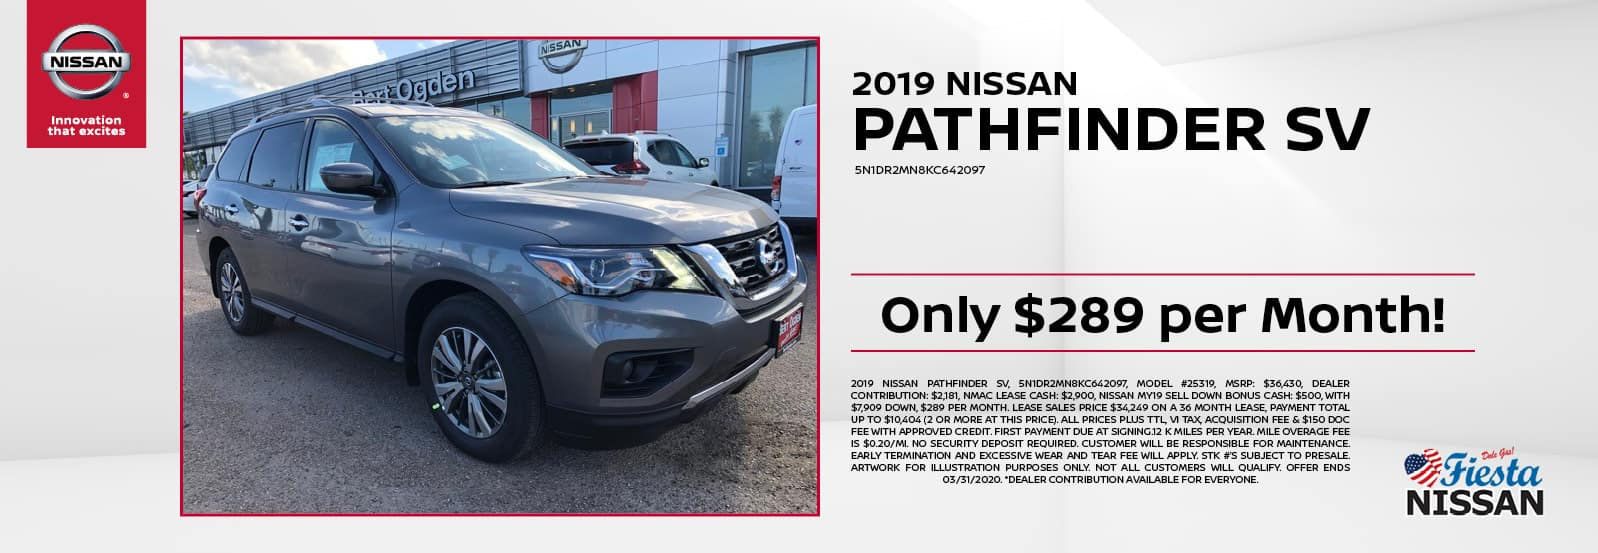 2019 Nissan Pathfinder SV at Fiesta Nissan in Edinburg, TX